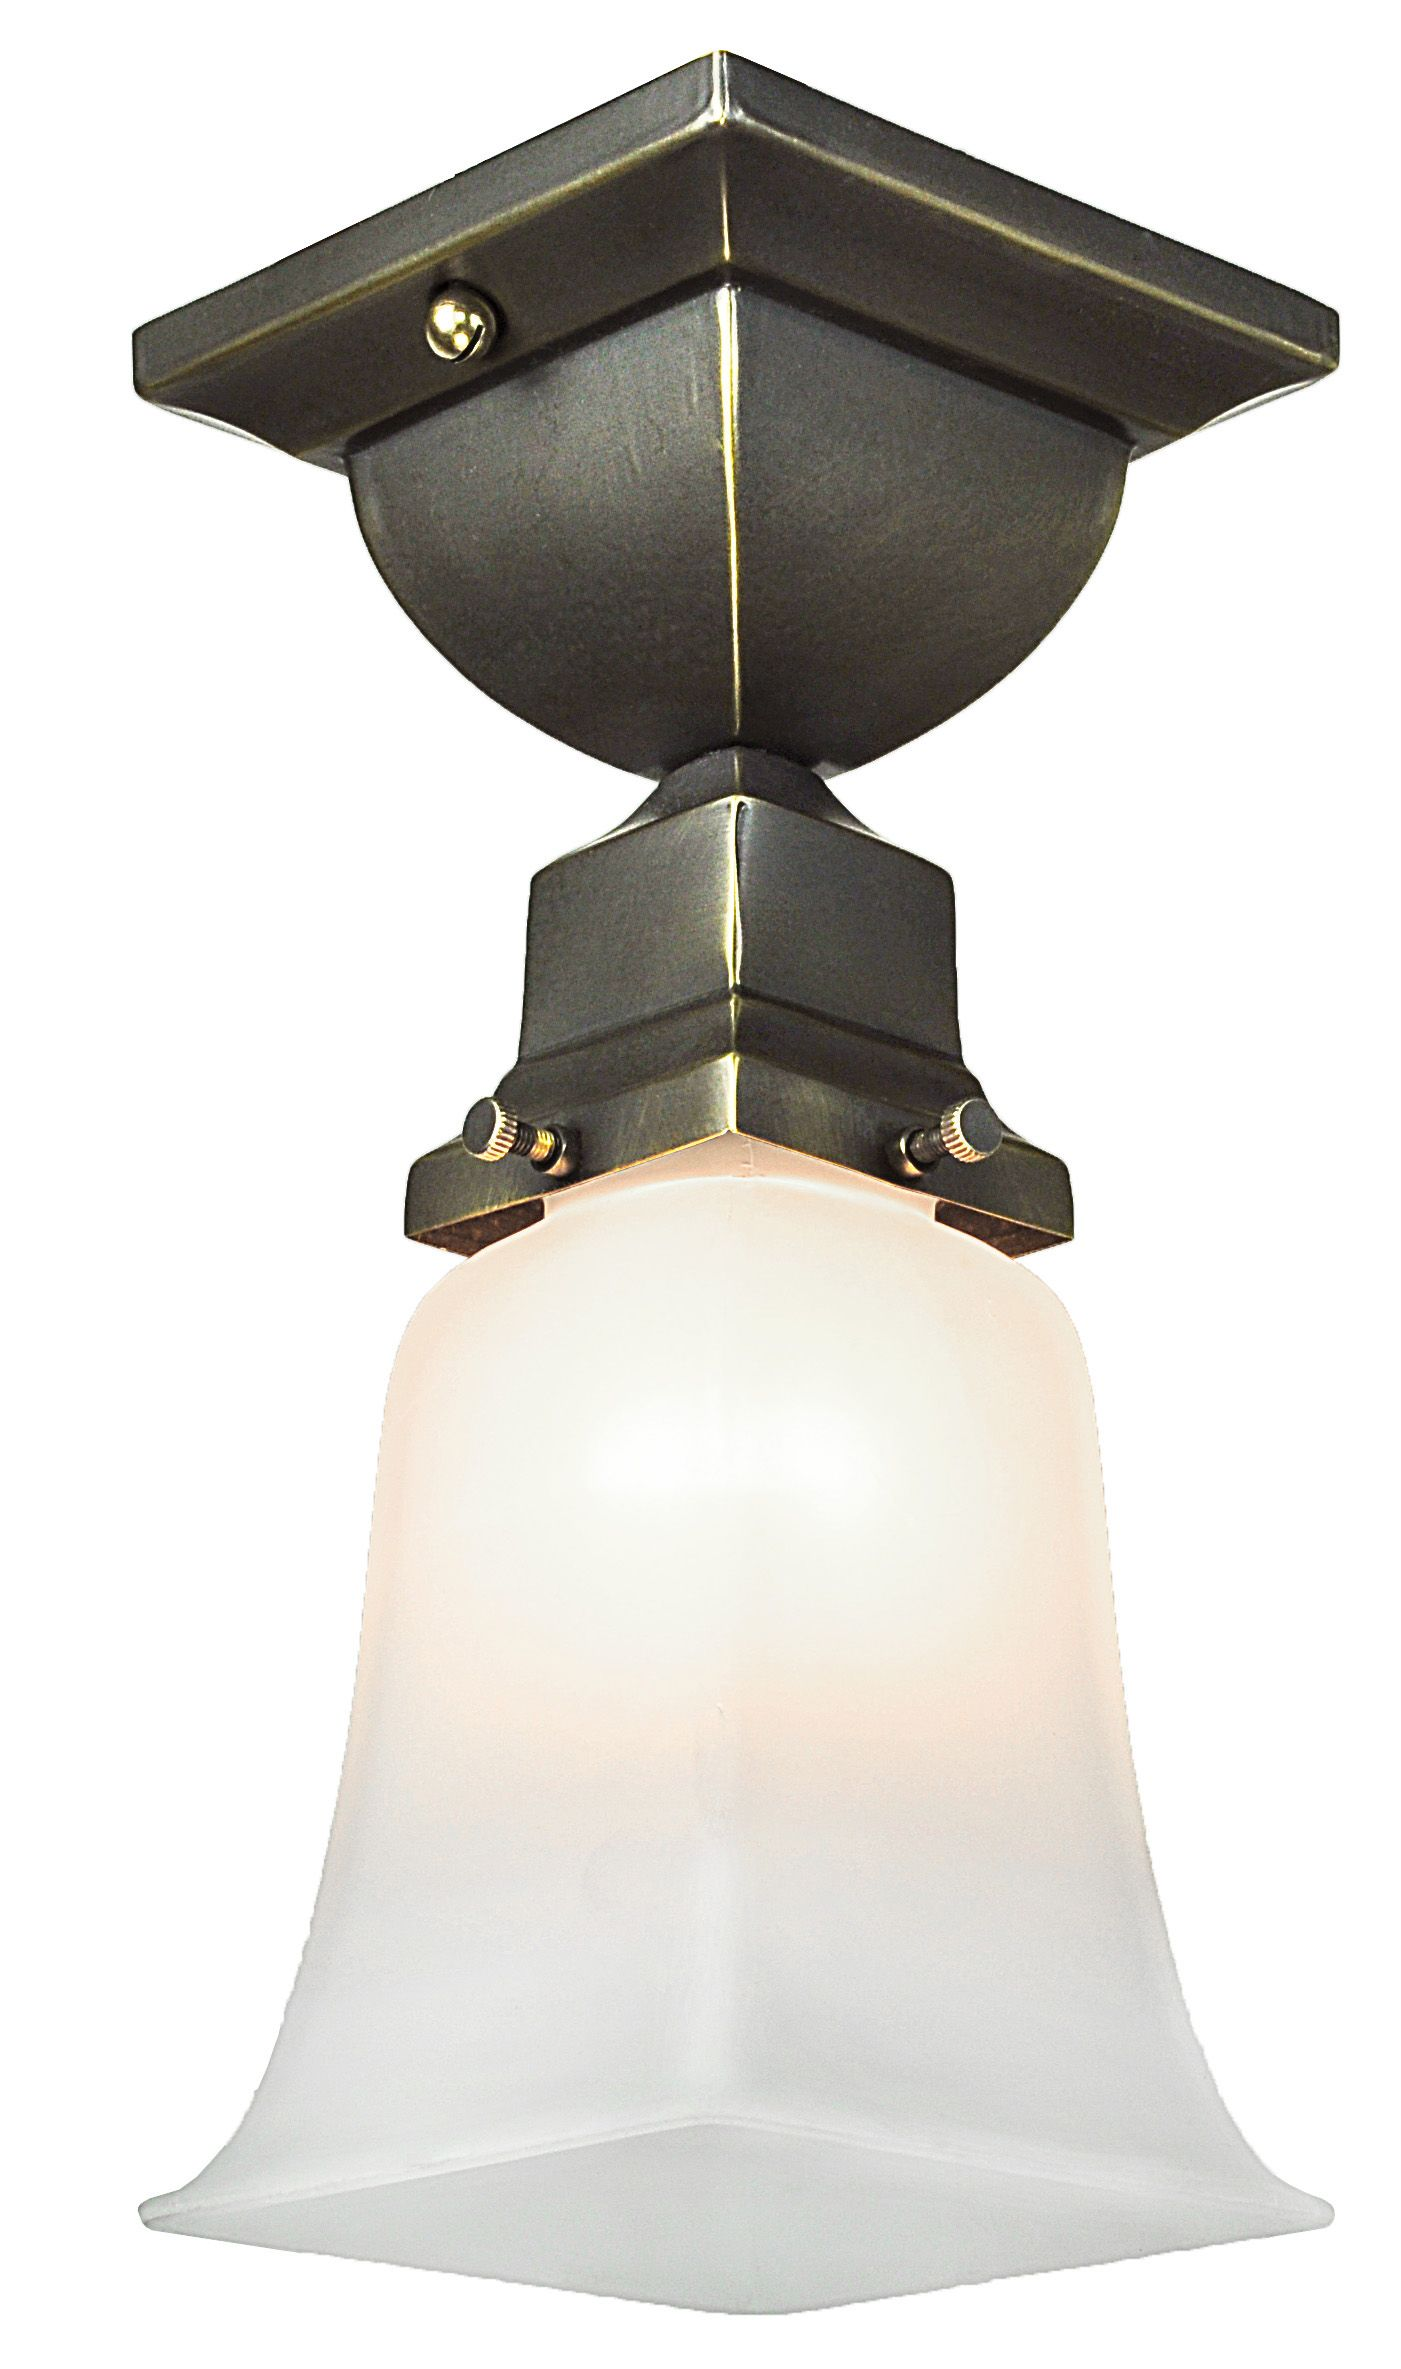 Vintage Hardware U0026 Lighting   Mission Style Flush Mount Very Close Ceiling  Light (416 MVCC)